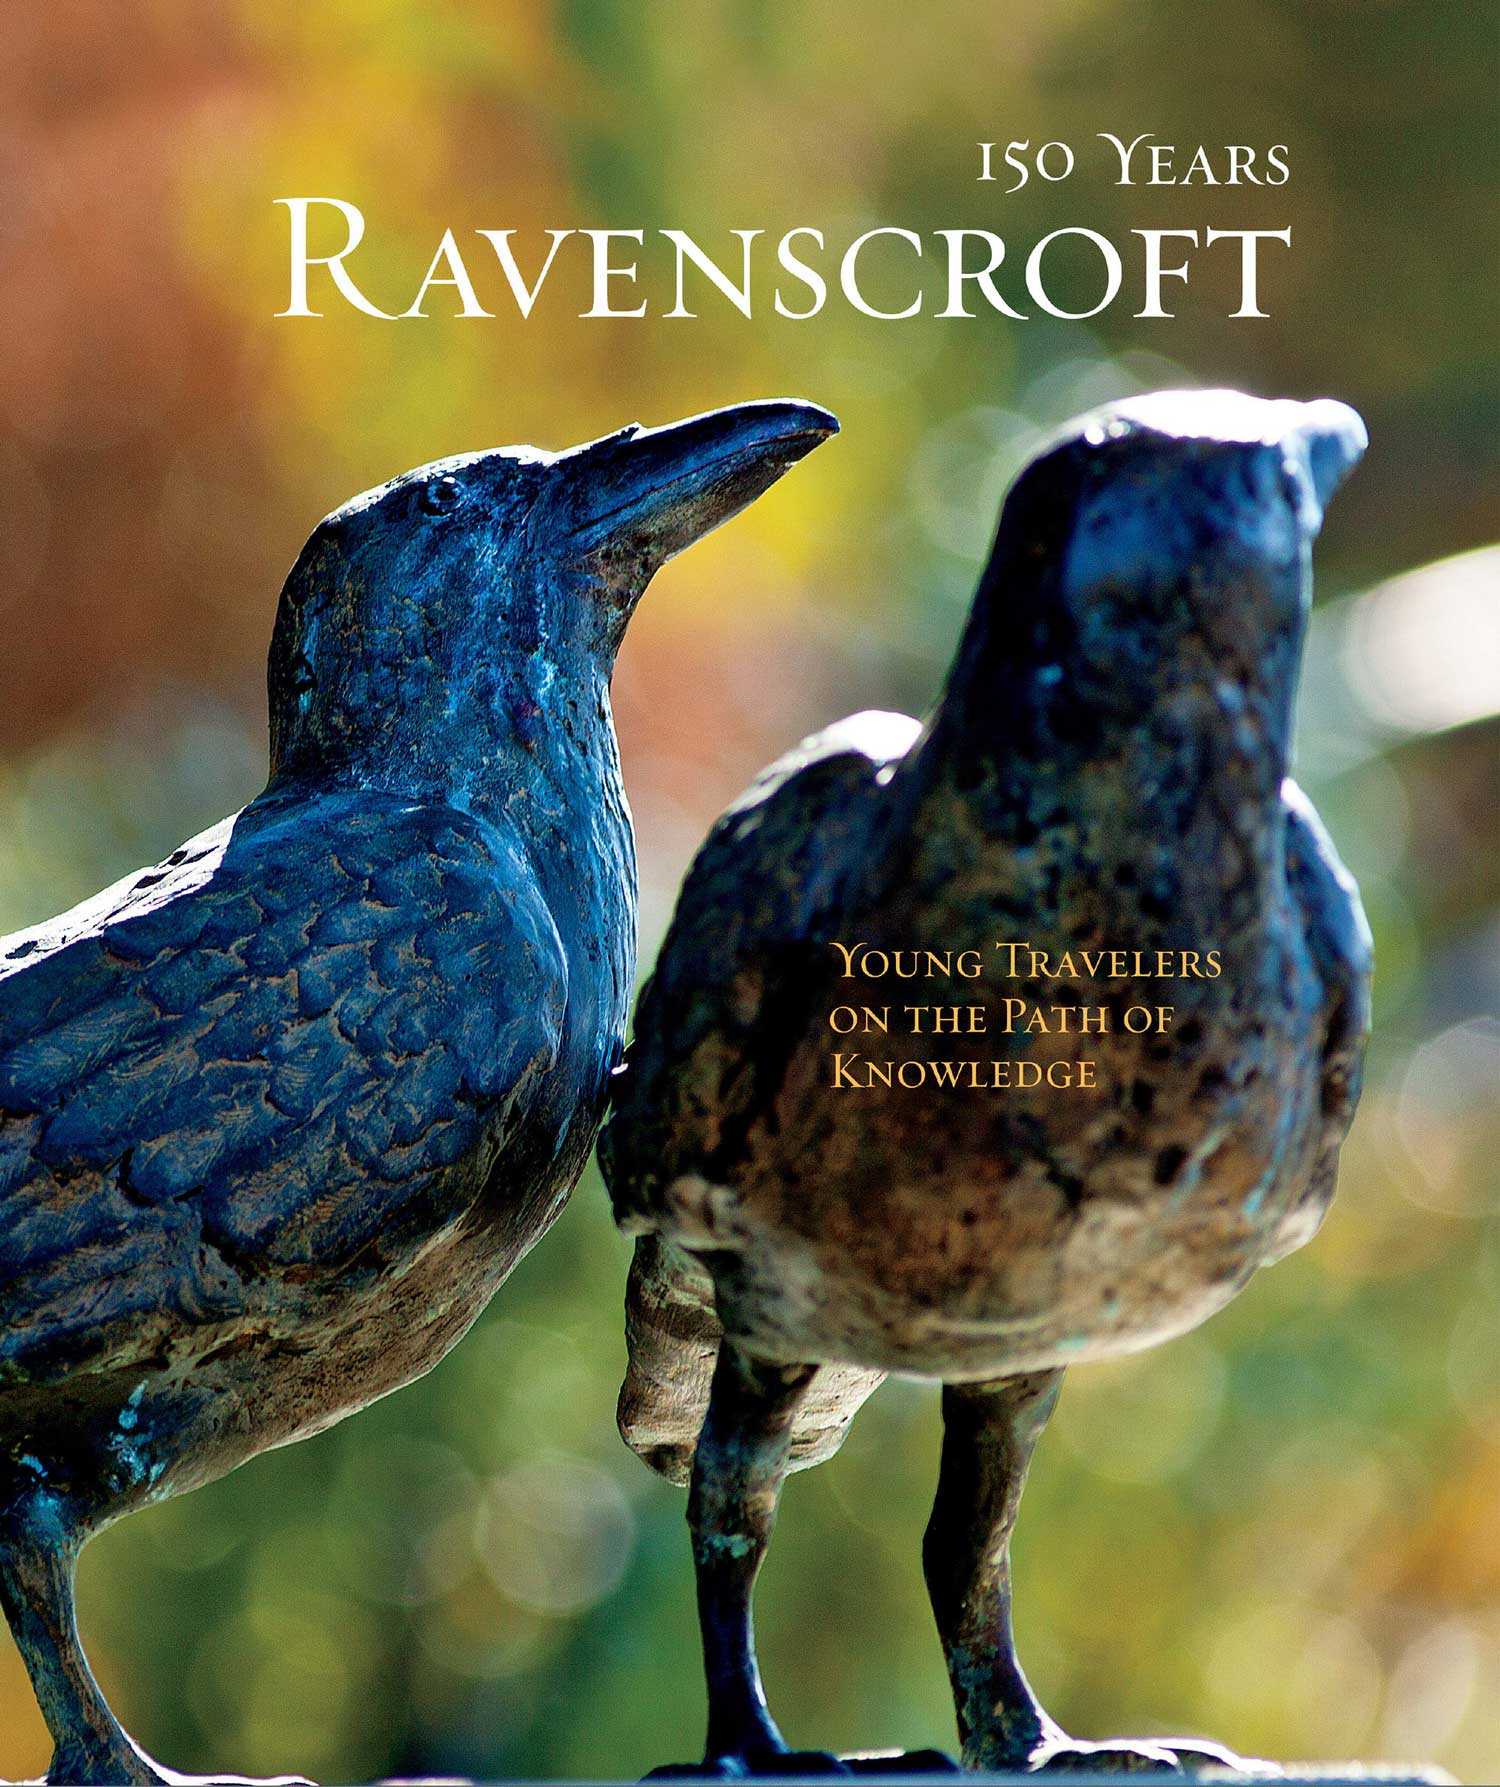 We coauthored the 150-year history of Ravenscroft, an independent school in Raleigh, NC. Laurie wrote the early history and designed the book and Billy picked up the narrative in the 1960s as well as producing new photography.